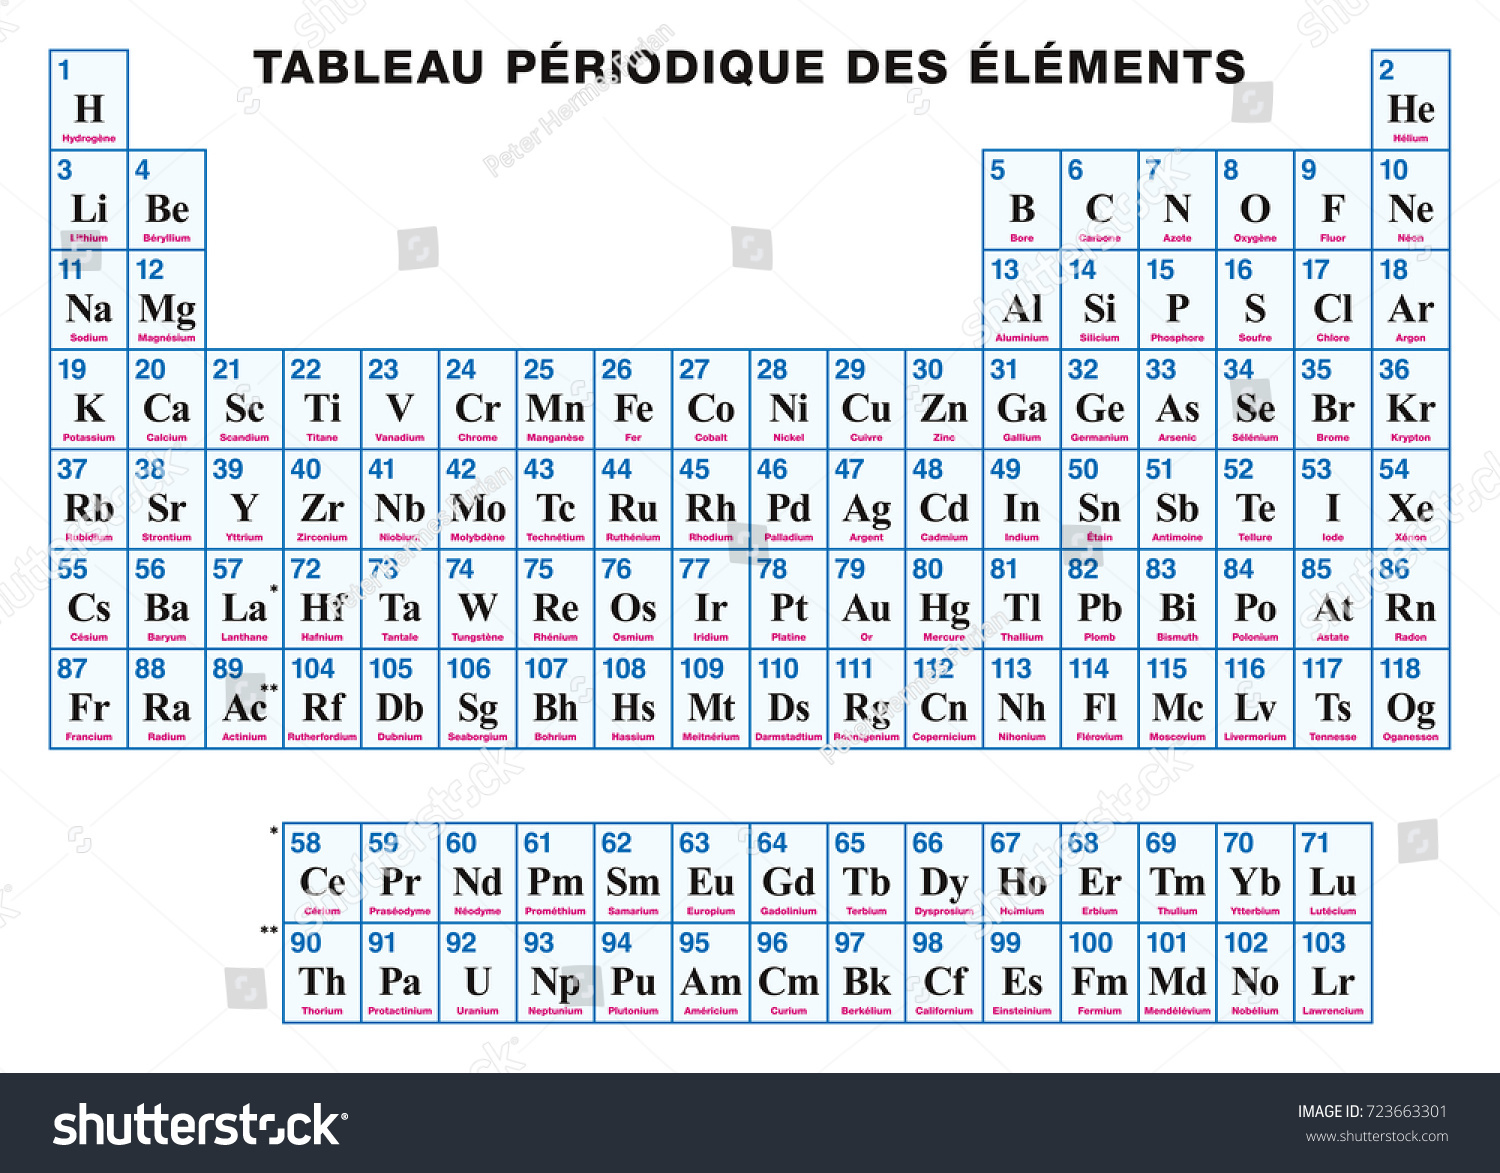 Periodic table elements french tabular arrangement stock vector periodic table of the elements french tabular arrangement of the chemical elements with their urtaz Images